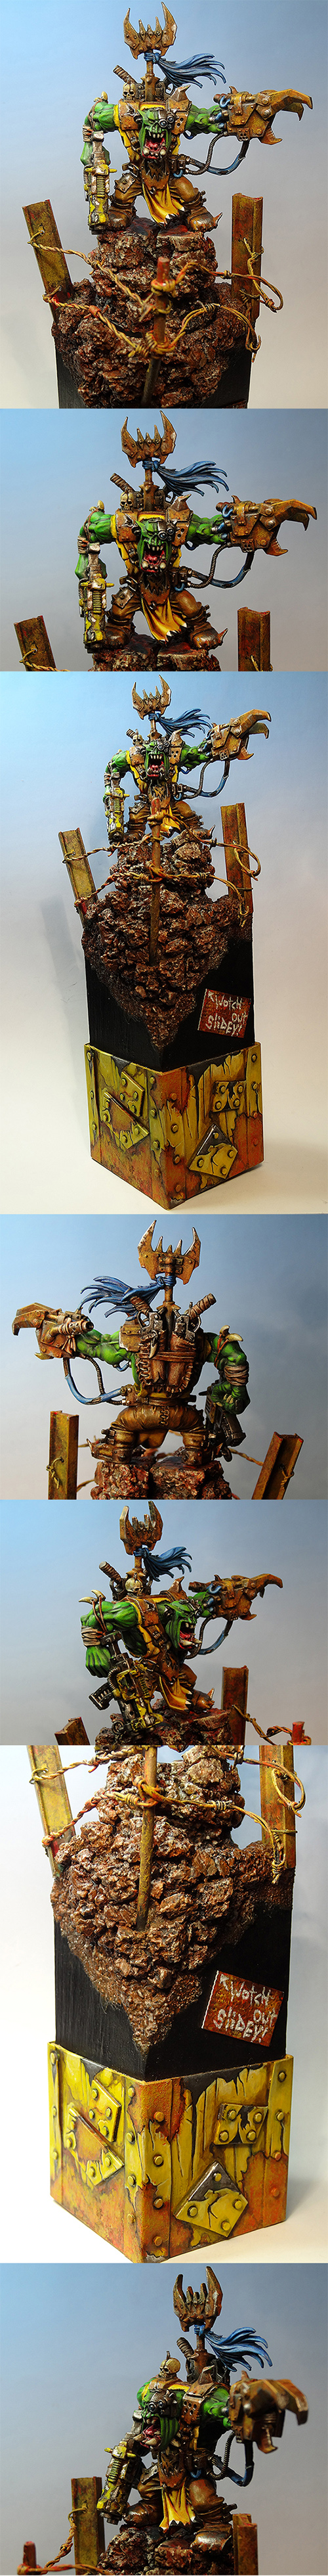 Ork Warboss GD UK 2012 Finalist